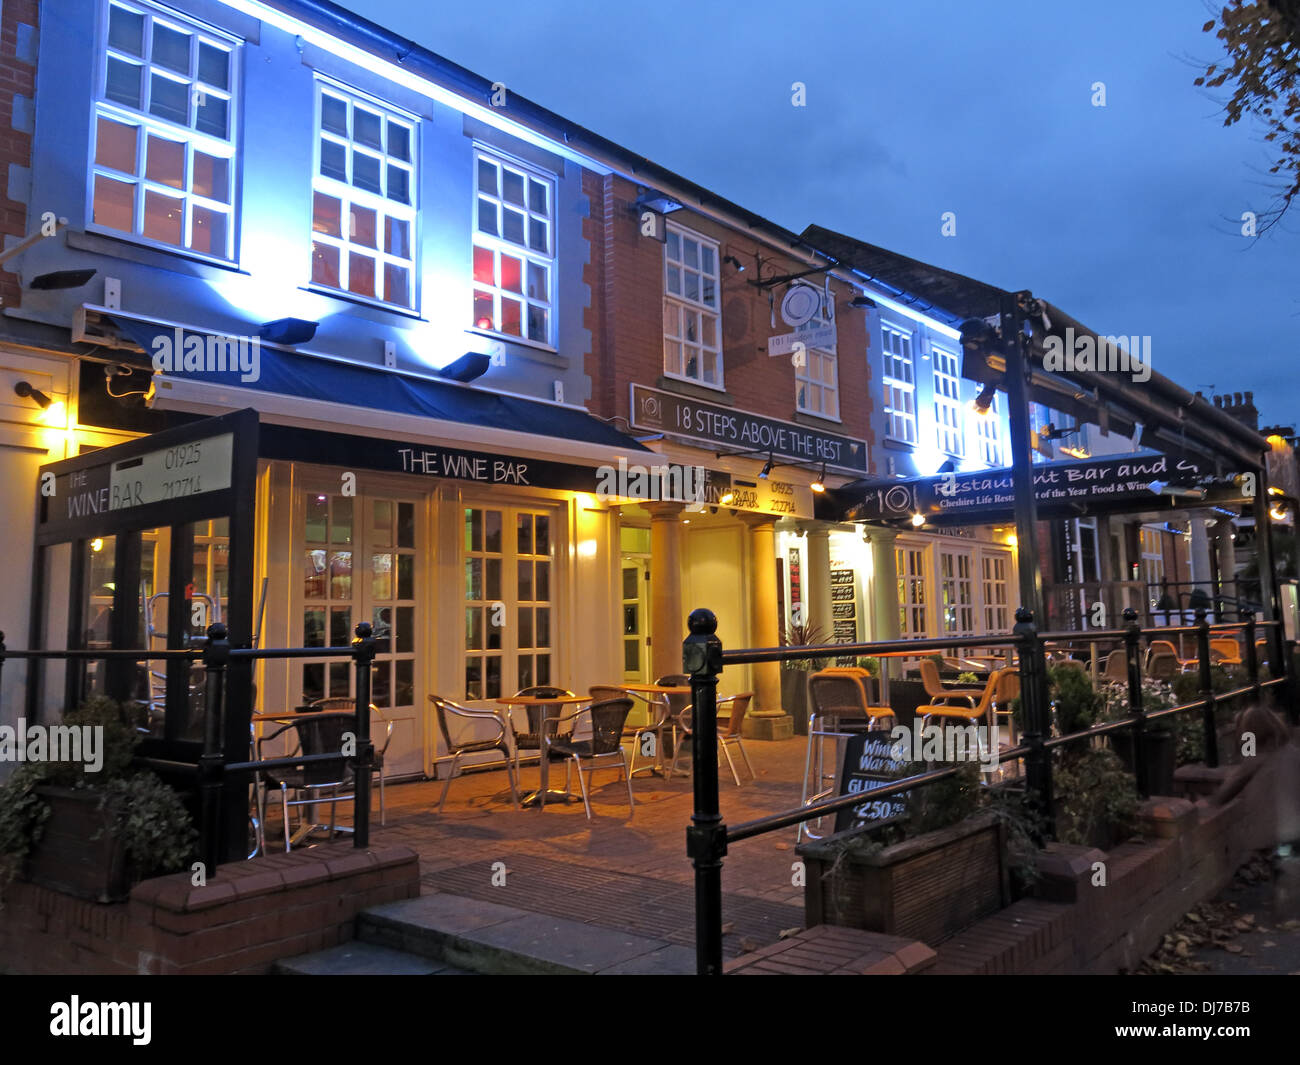 Wine bars Restaurants Stockton Heath Warrington at dusk England UK - Stock Image